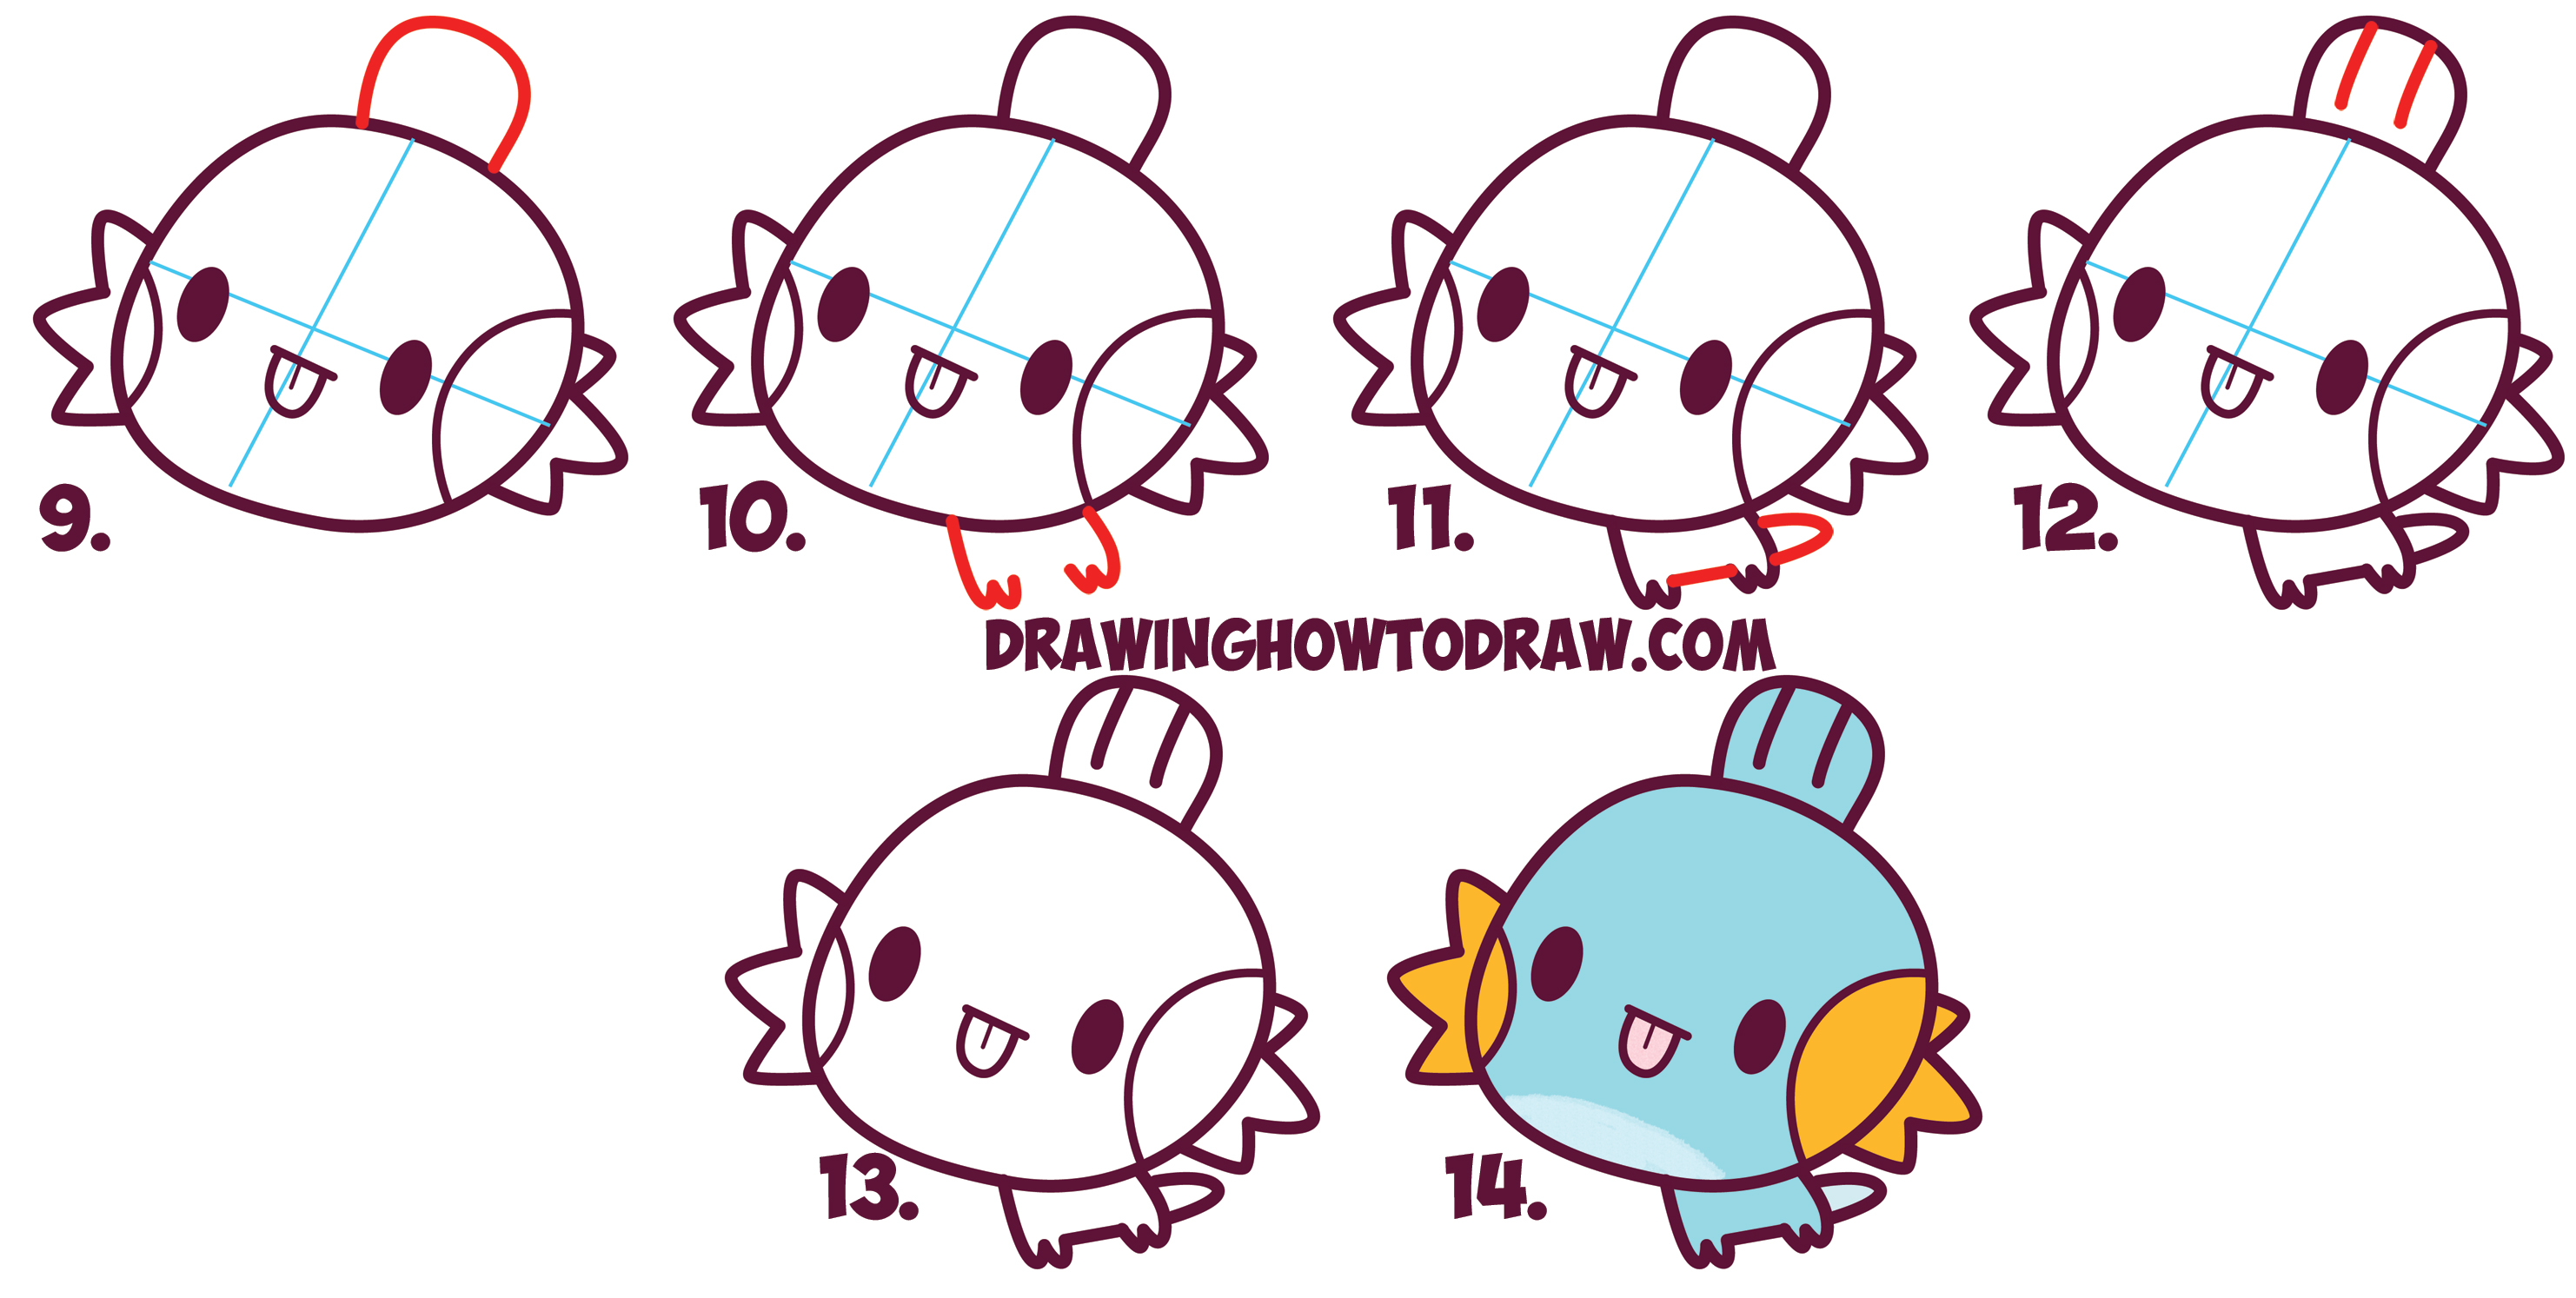 Uncategorized Pokemon That Are Easy To Draw how to draw mudkip from pokemon cute chibi kawaii easy step learn simple steps